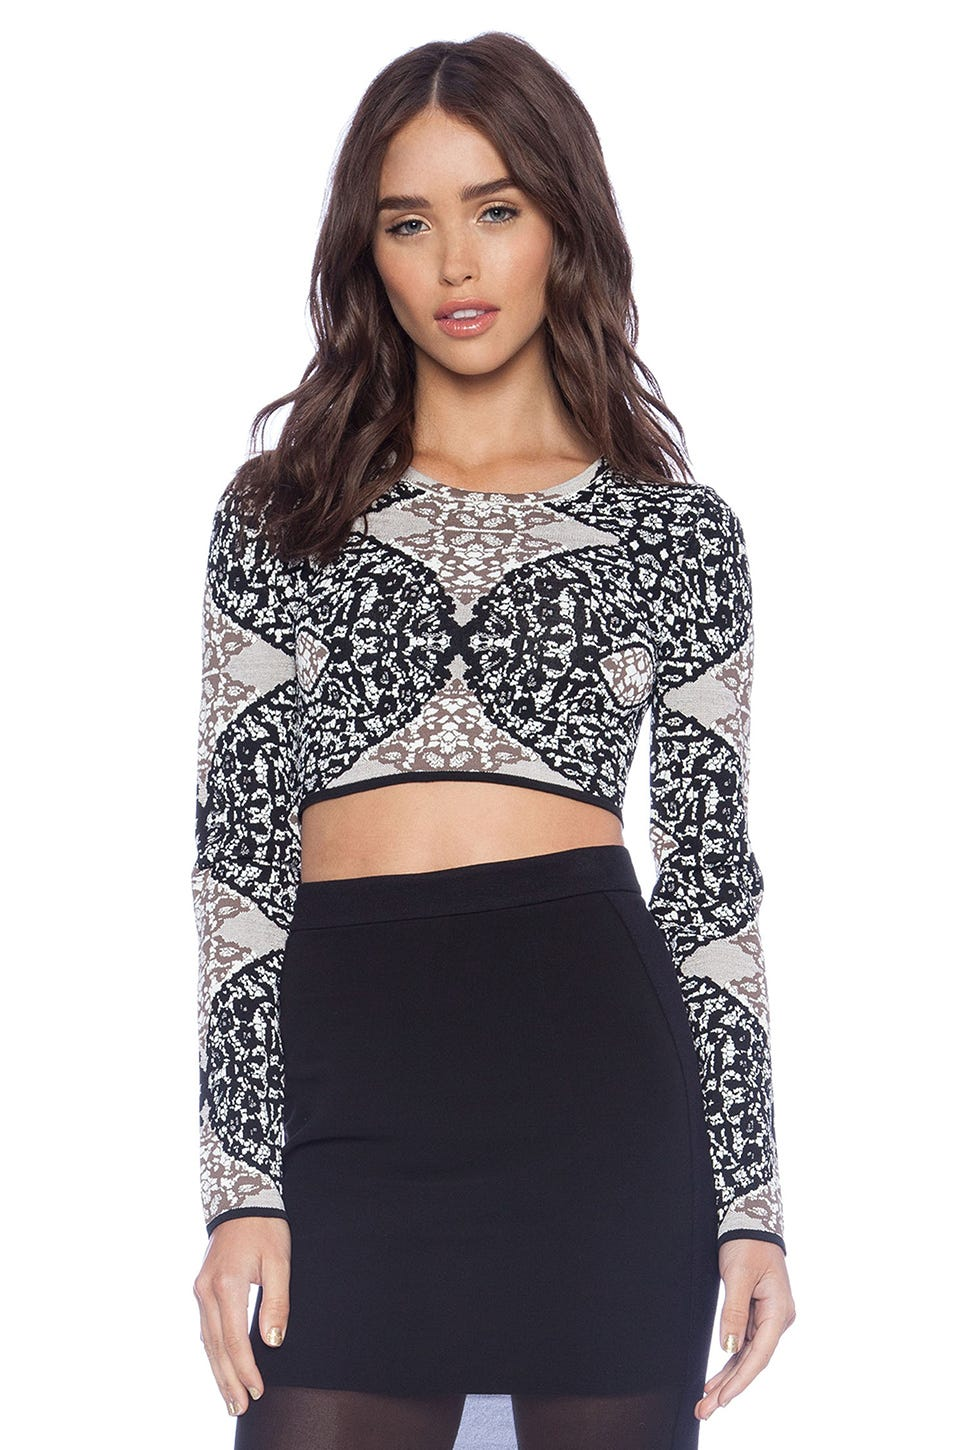 596c08e9c892bd Cold Weather Crop Top Outfits - Fall Dressing